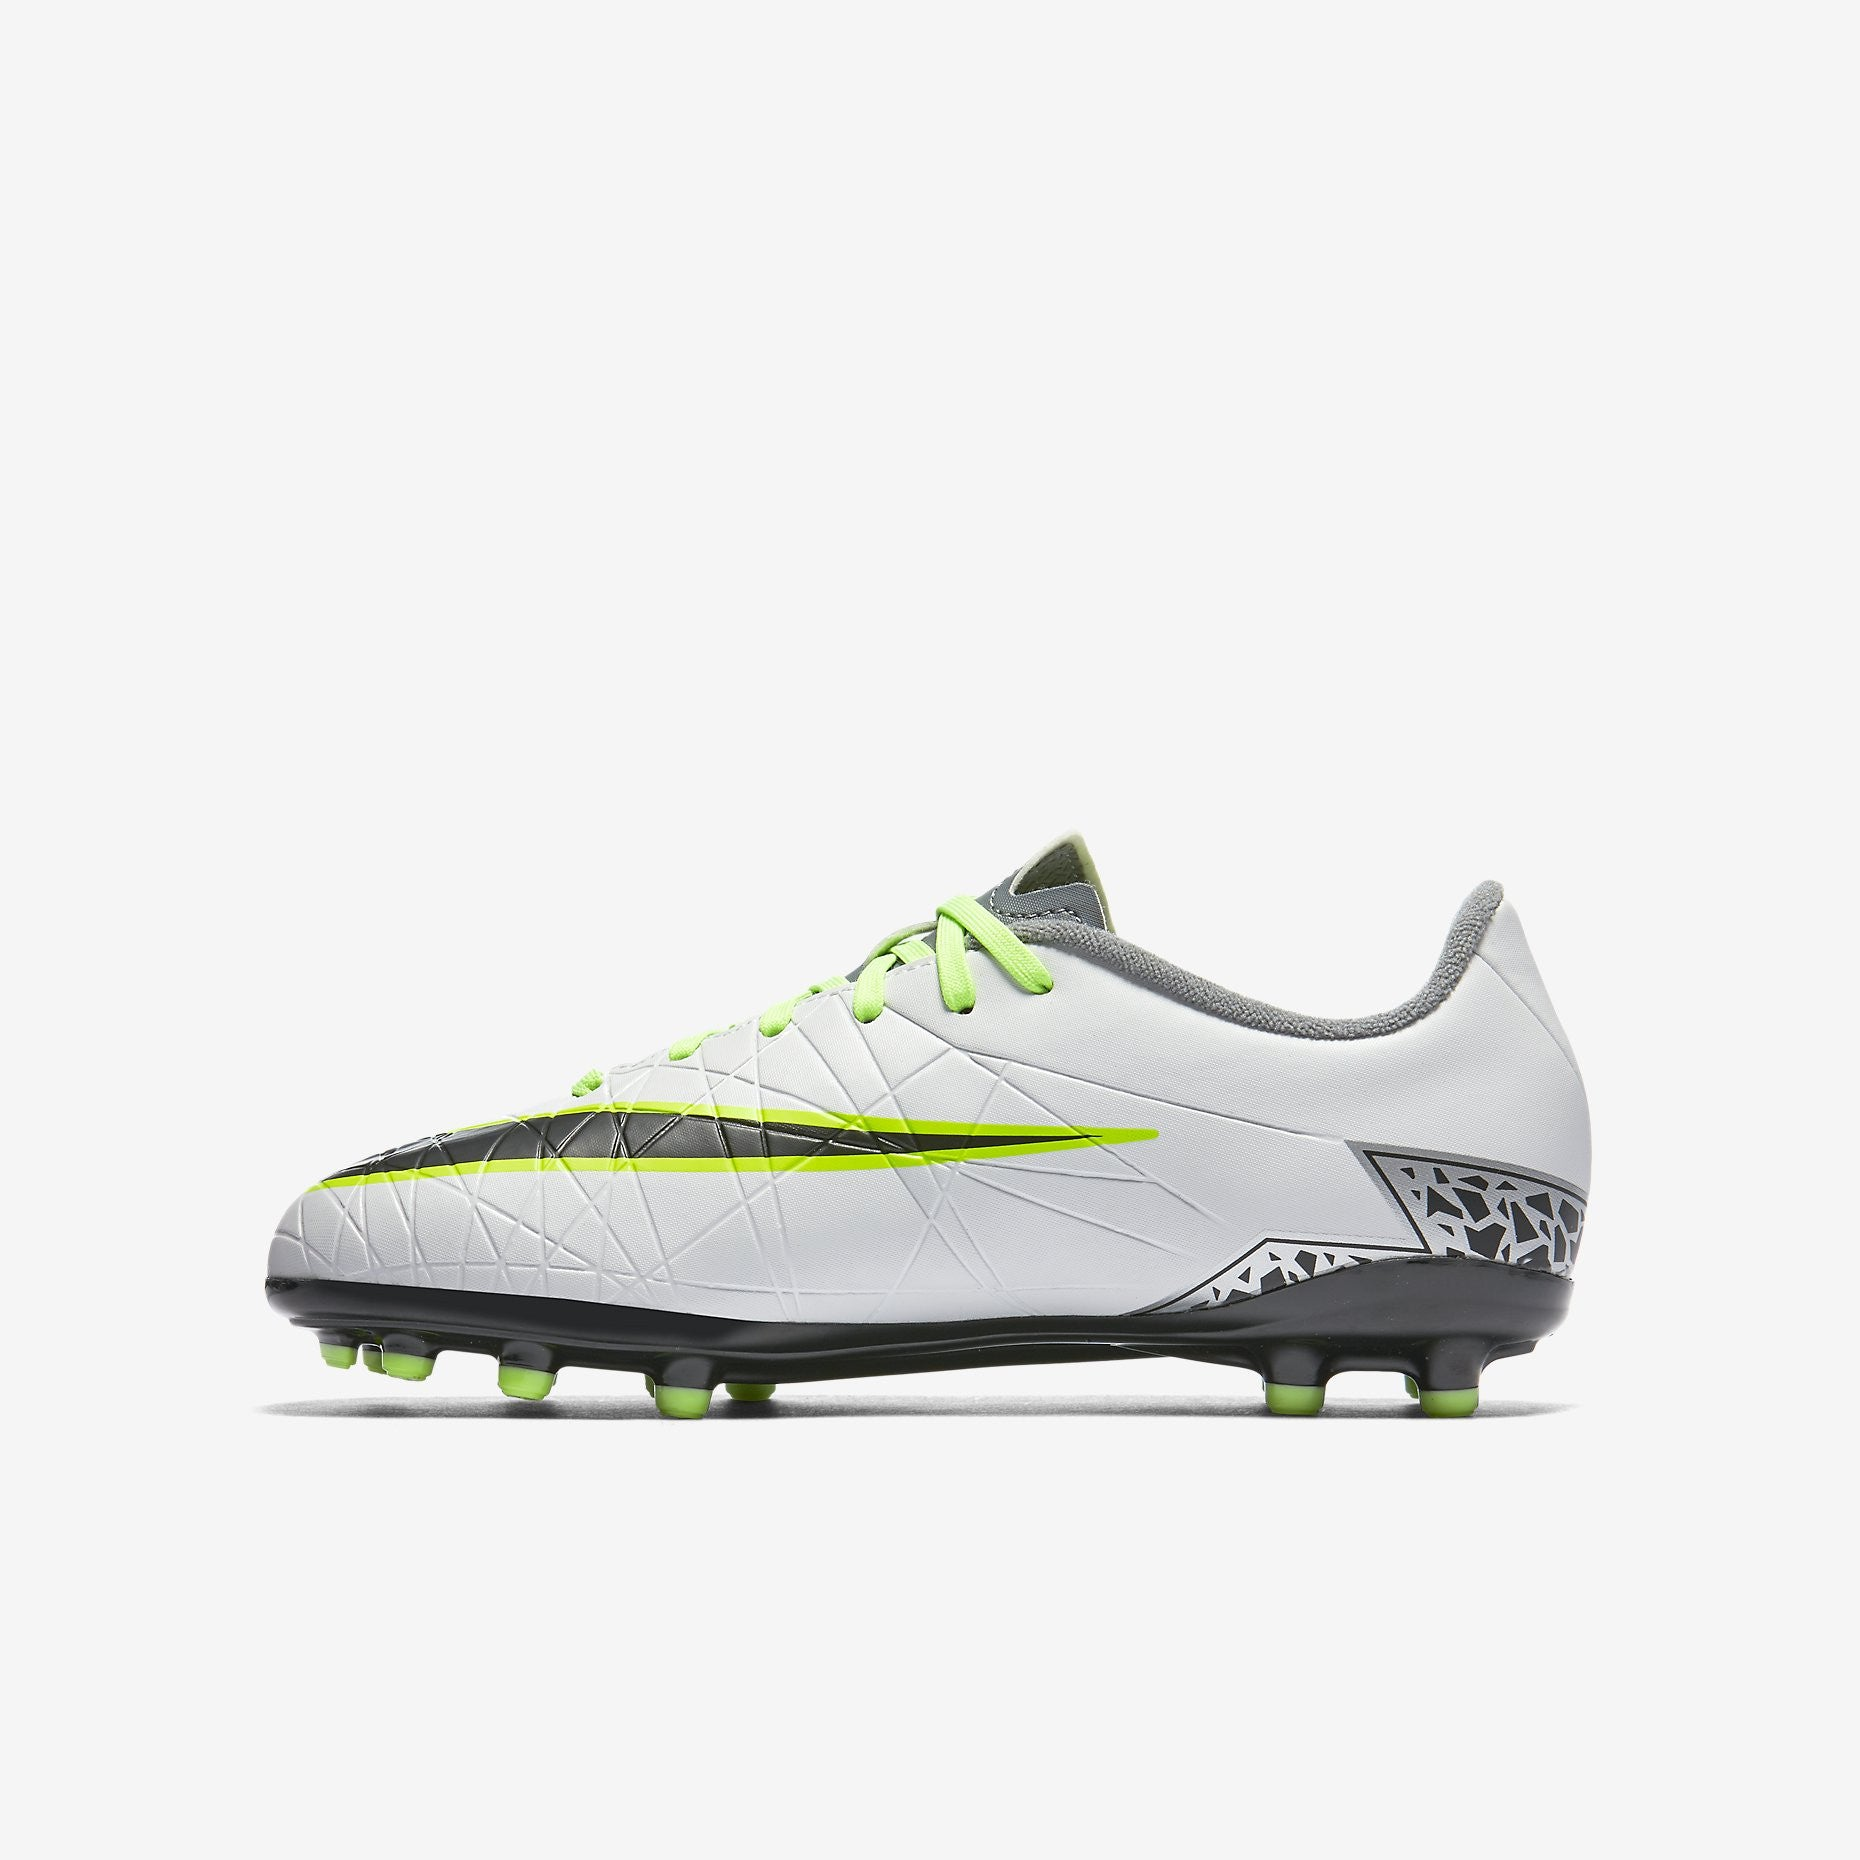 on sale 97e3d e5012 Nike - Nike Junior HyperVenom Phelon II FG - La Liga Soccer